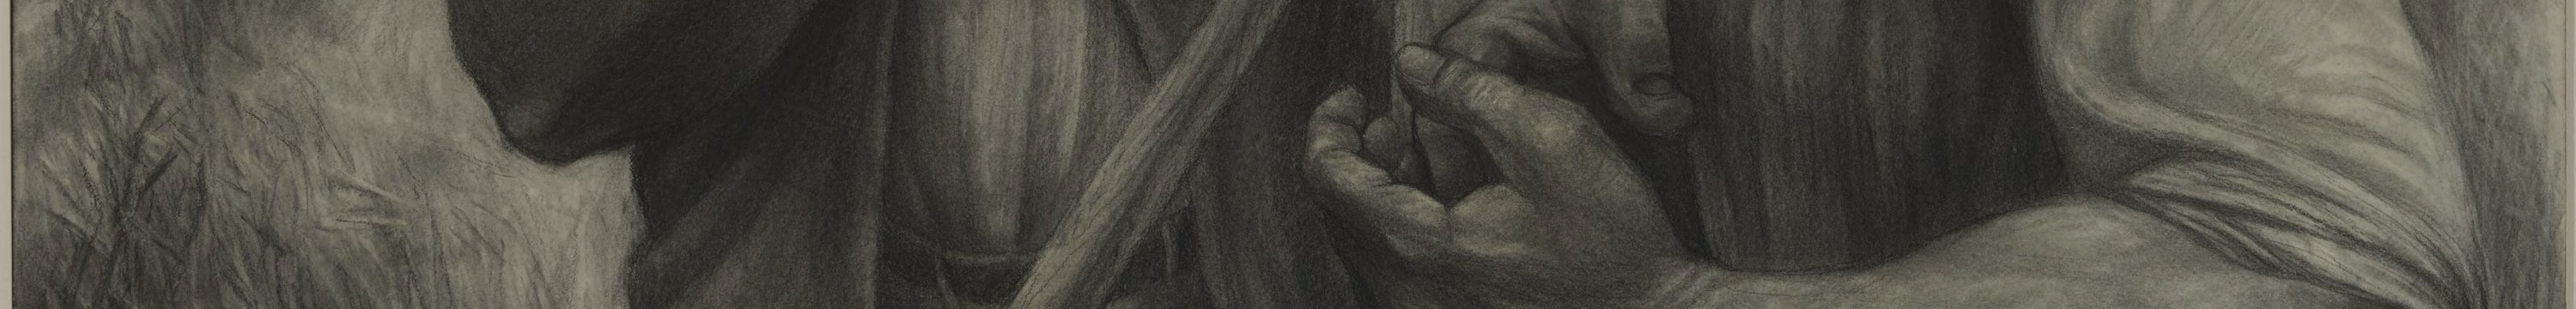 Detail image of a charcoal sketch of a man's hands, 1991.126